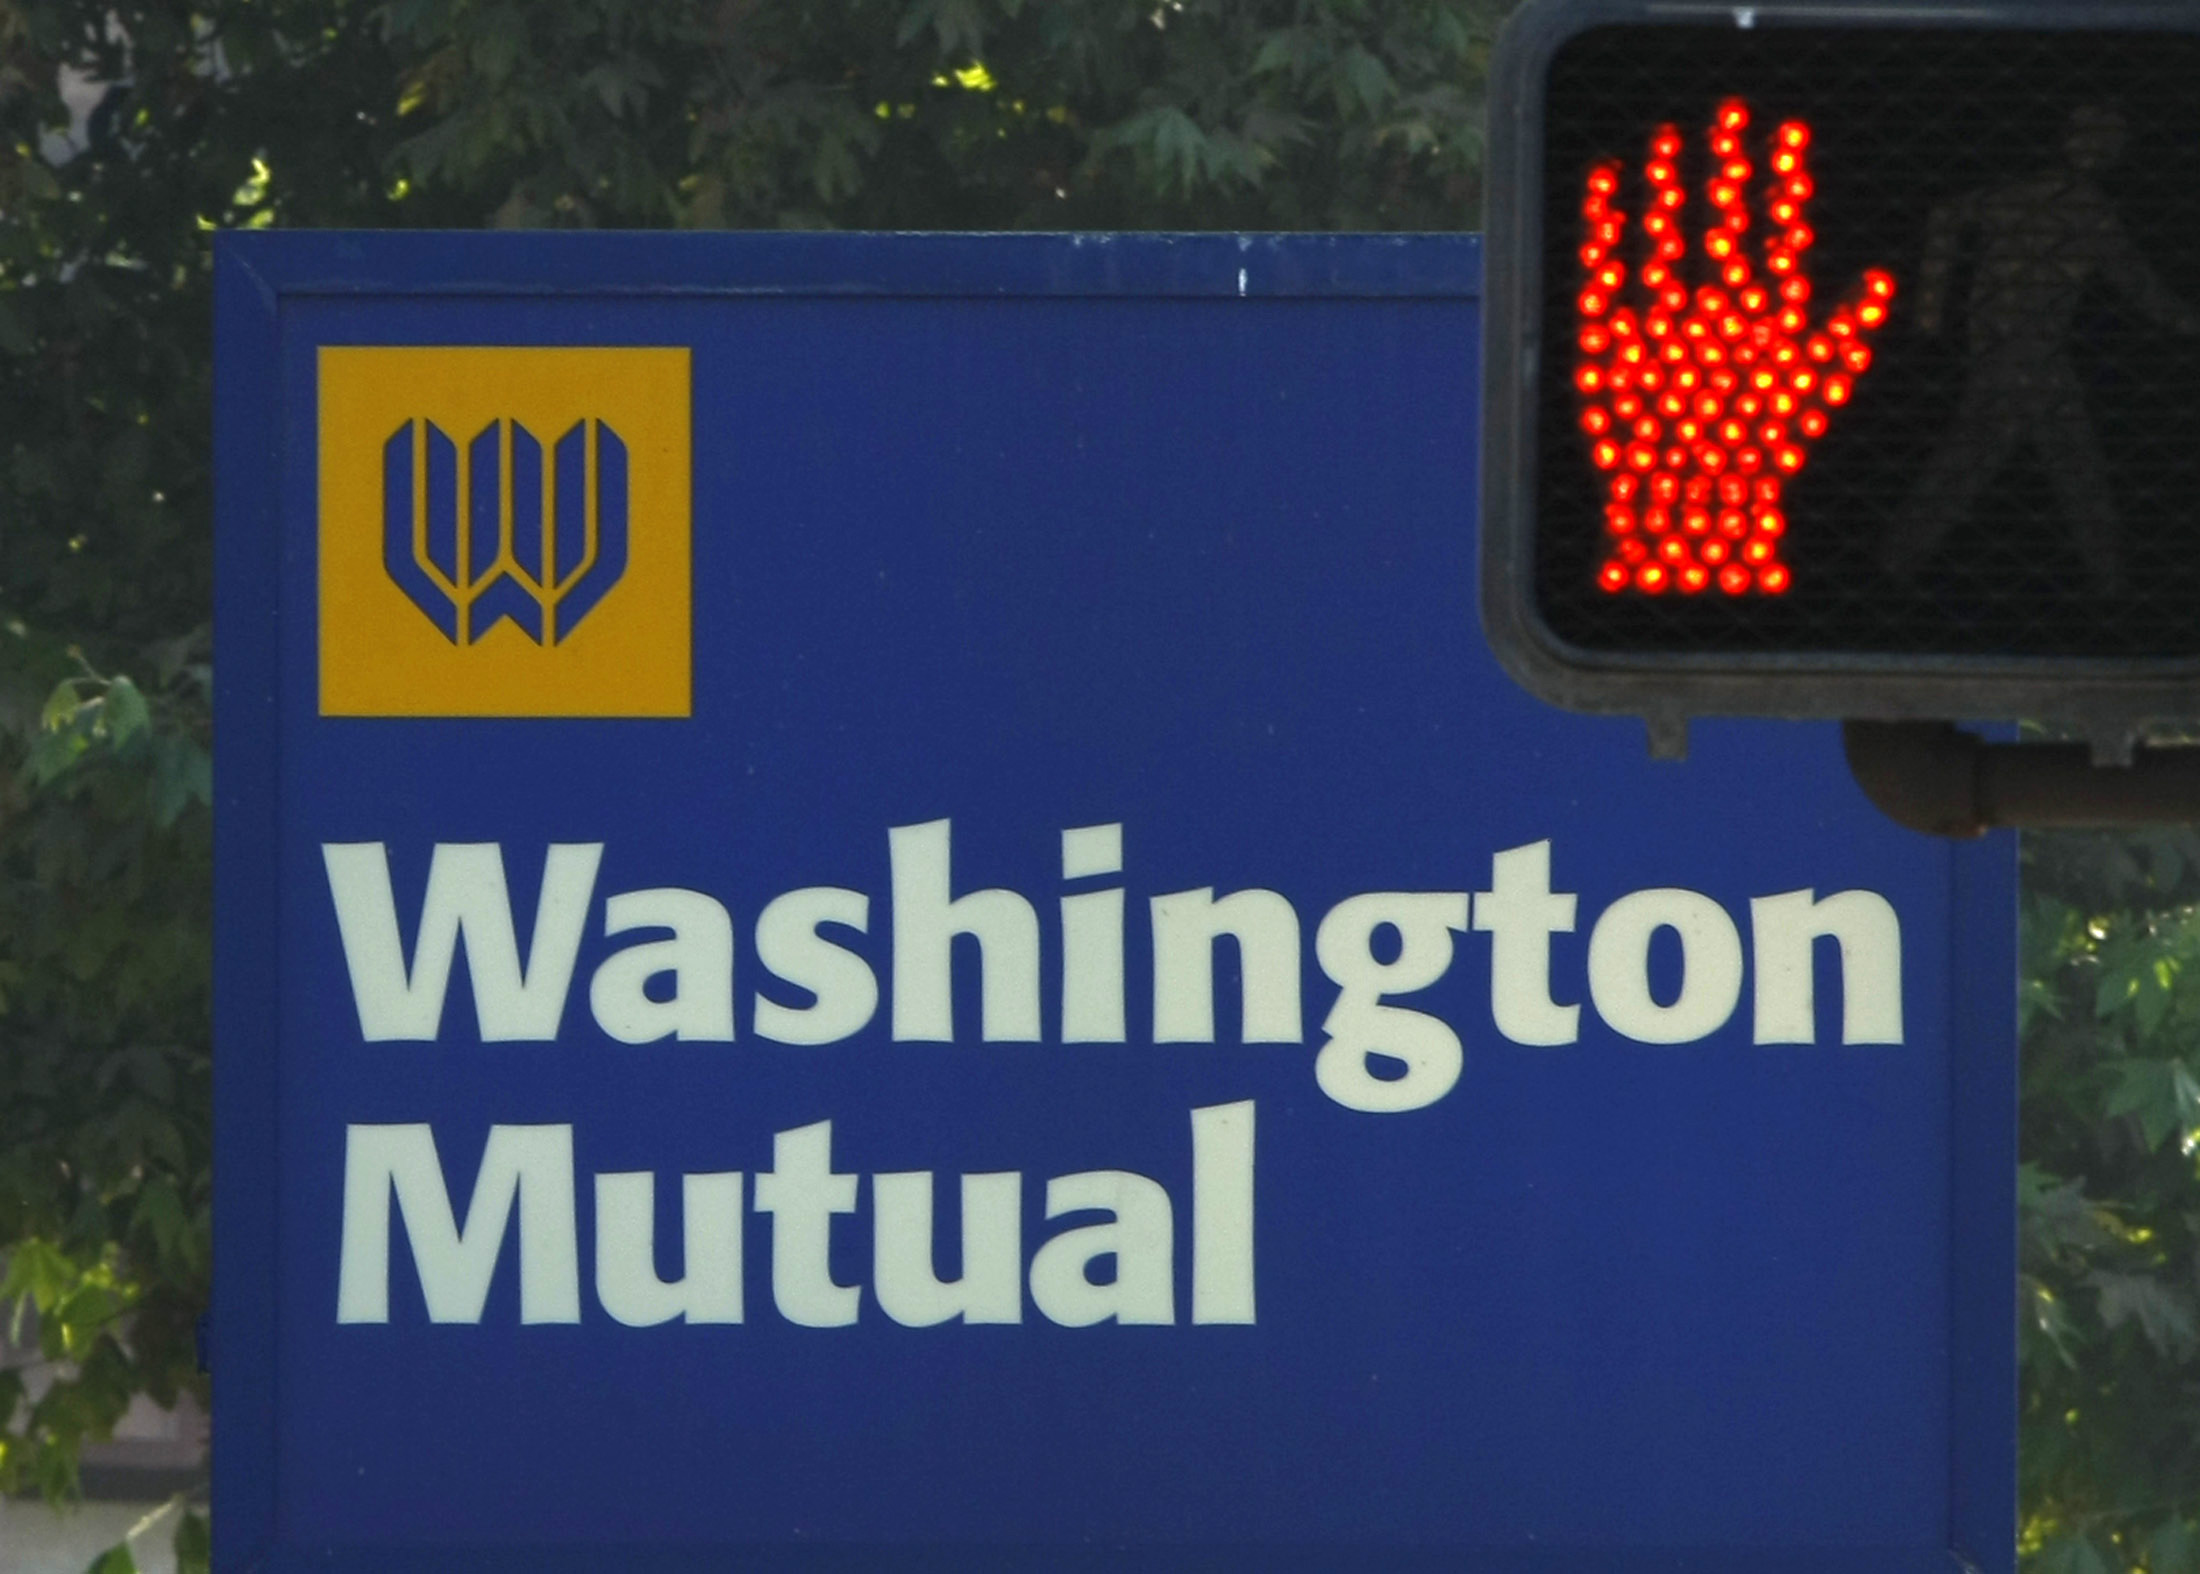 A Washington Mutual Bank sign is shown here in Solana Beach, California on Friday.